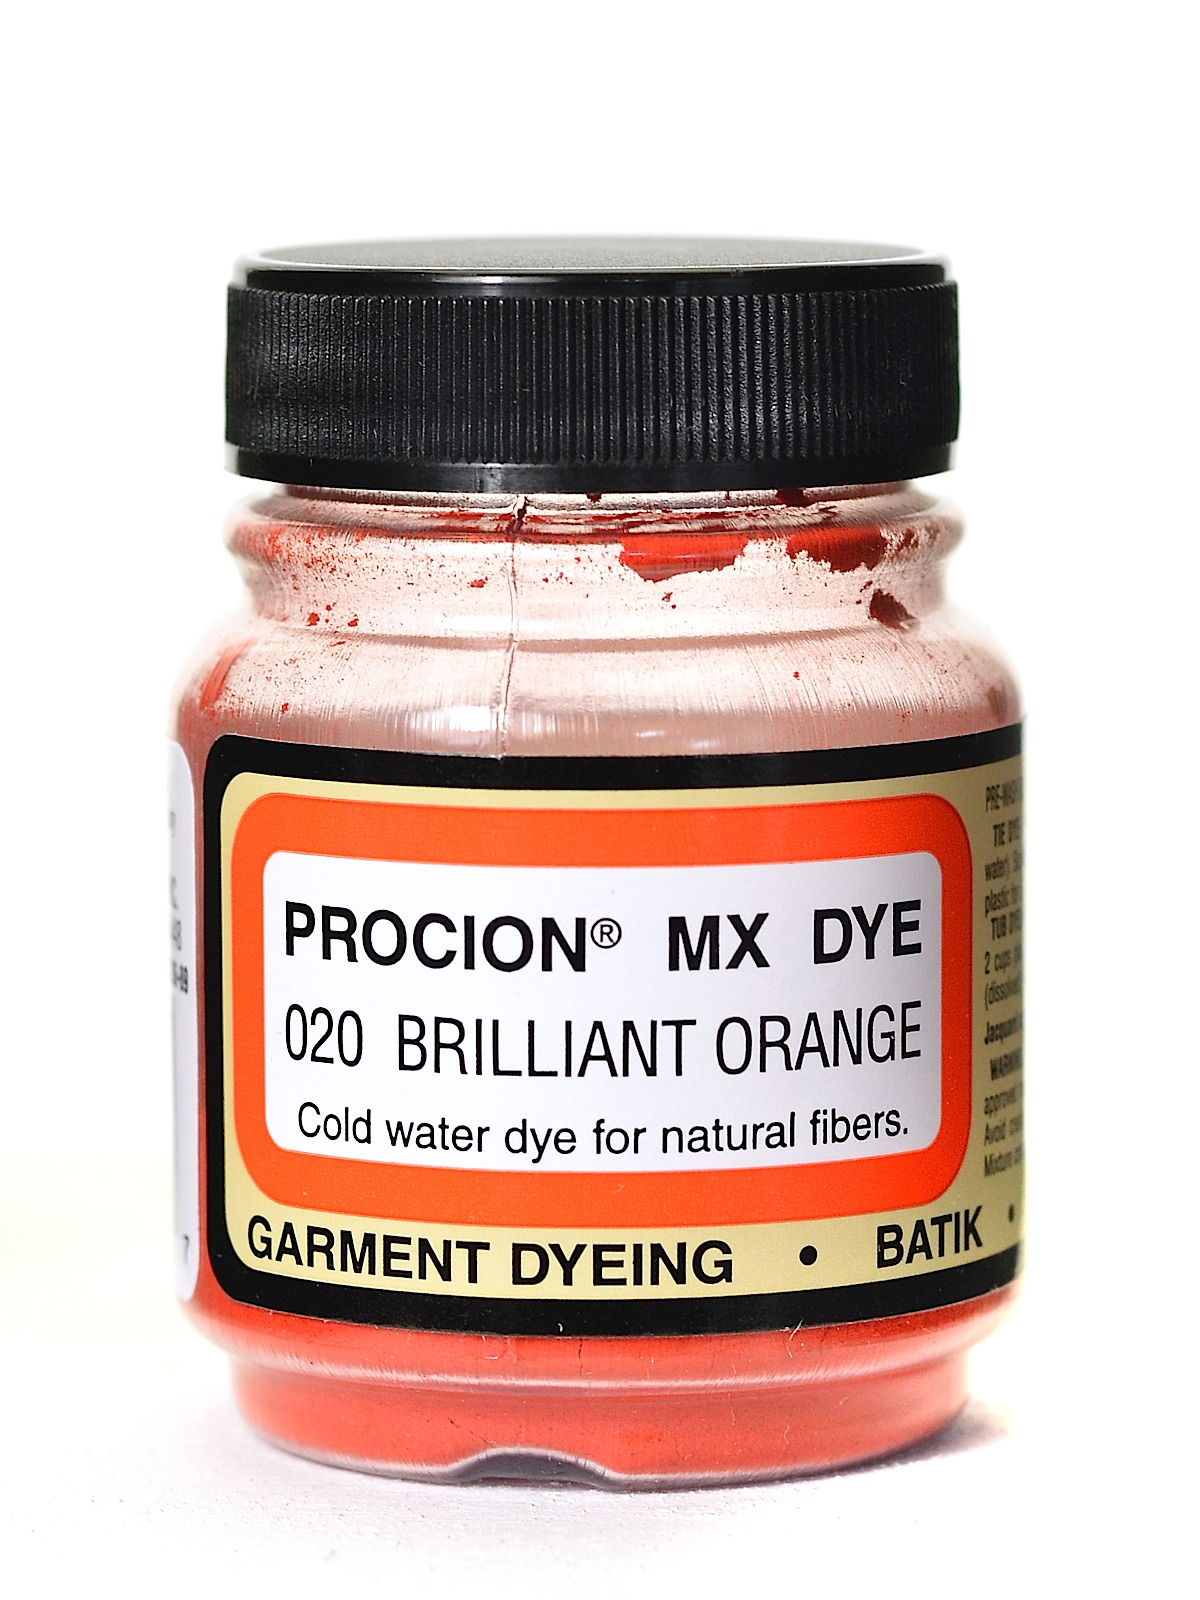 Jacquard Procion MX dye 2020 brilliant orange